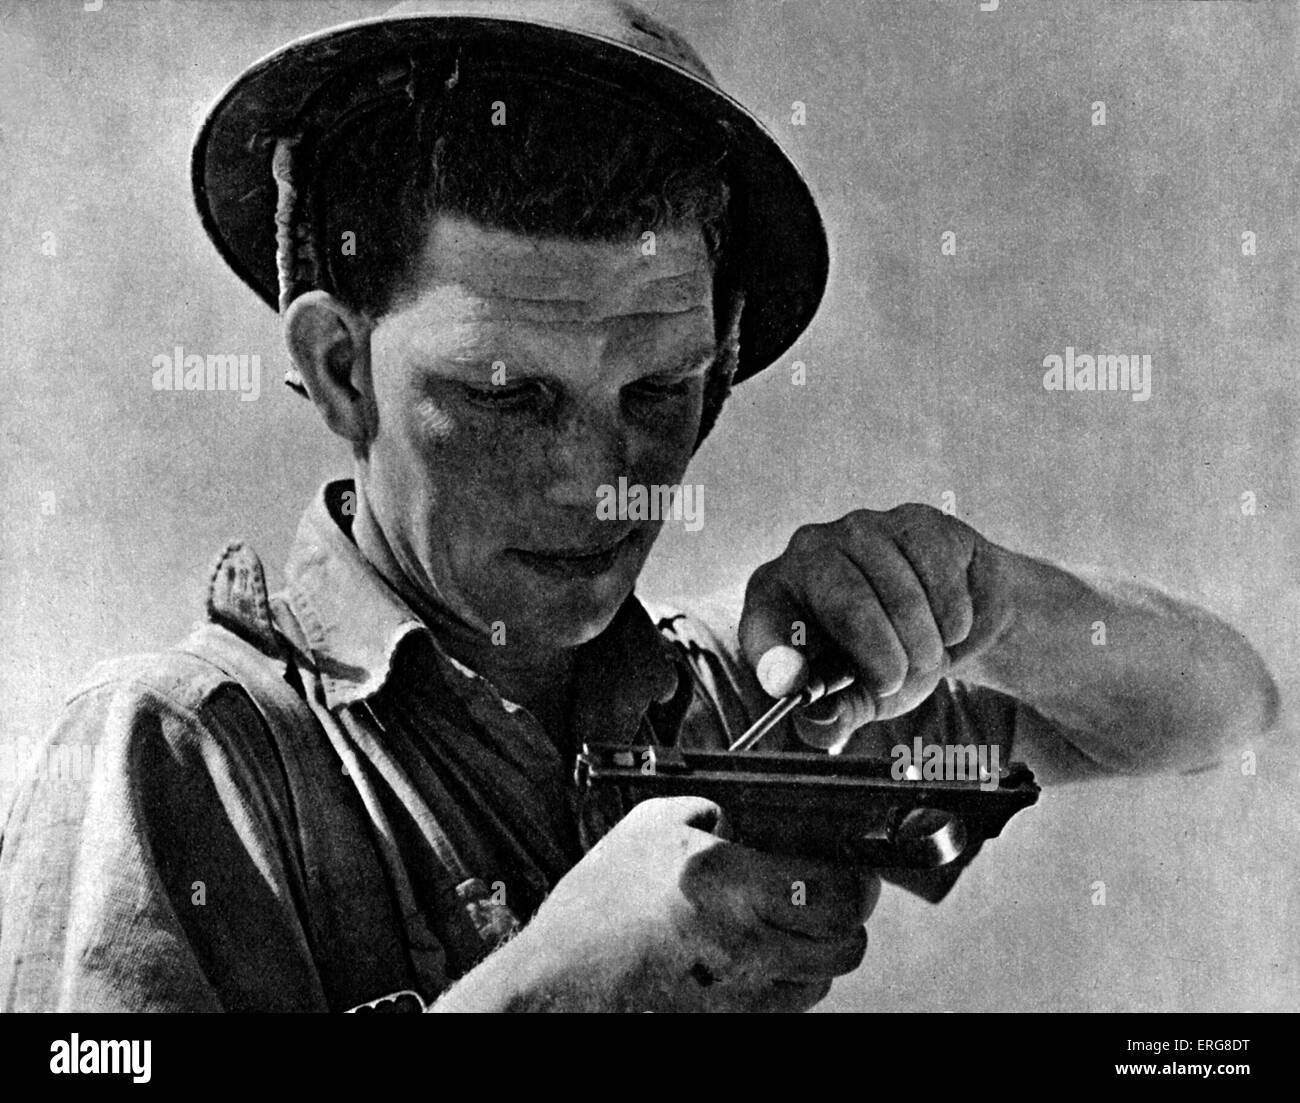 The Eighth Army - WWII.  Soldier from the Eighth Army cleaning his gun during the lull at Gazala, January 1942. - Stock Image